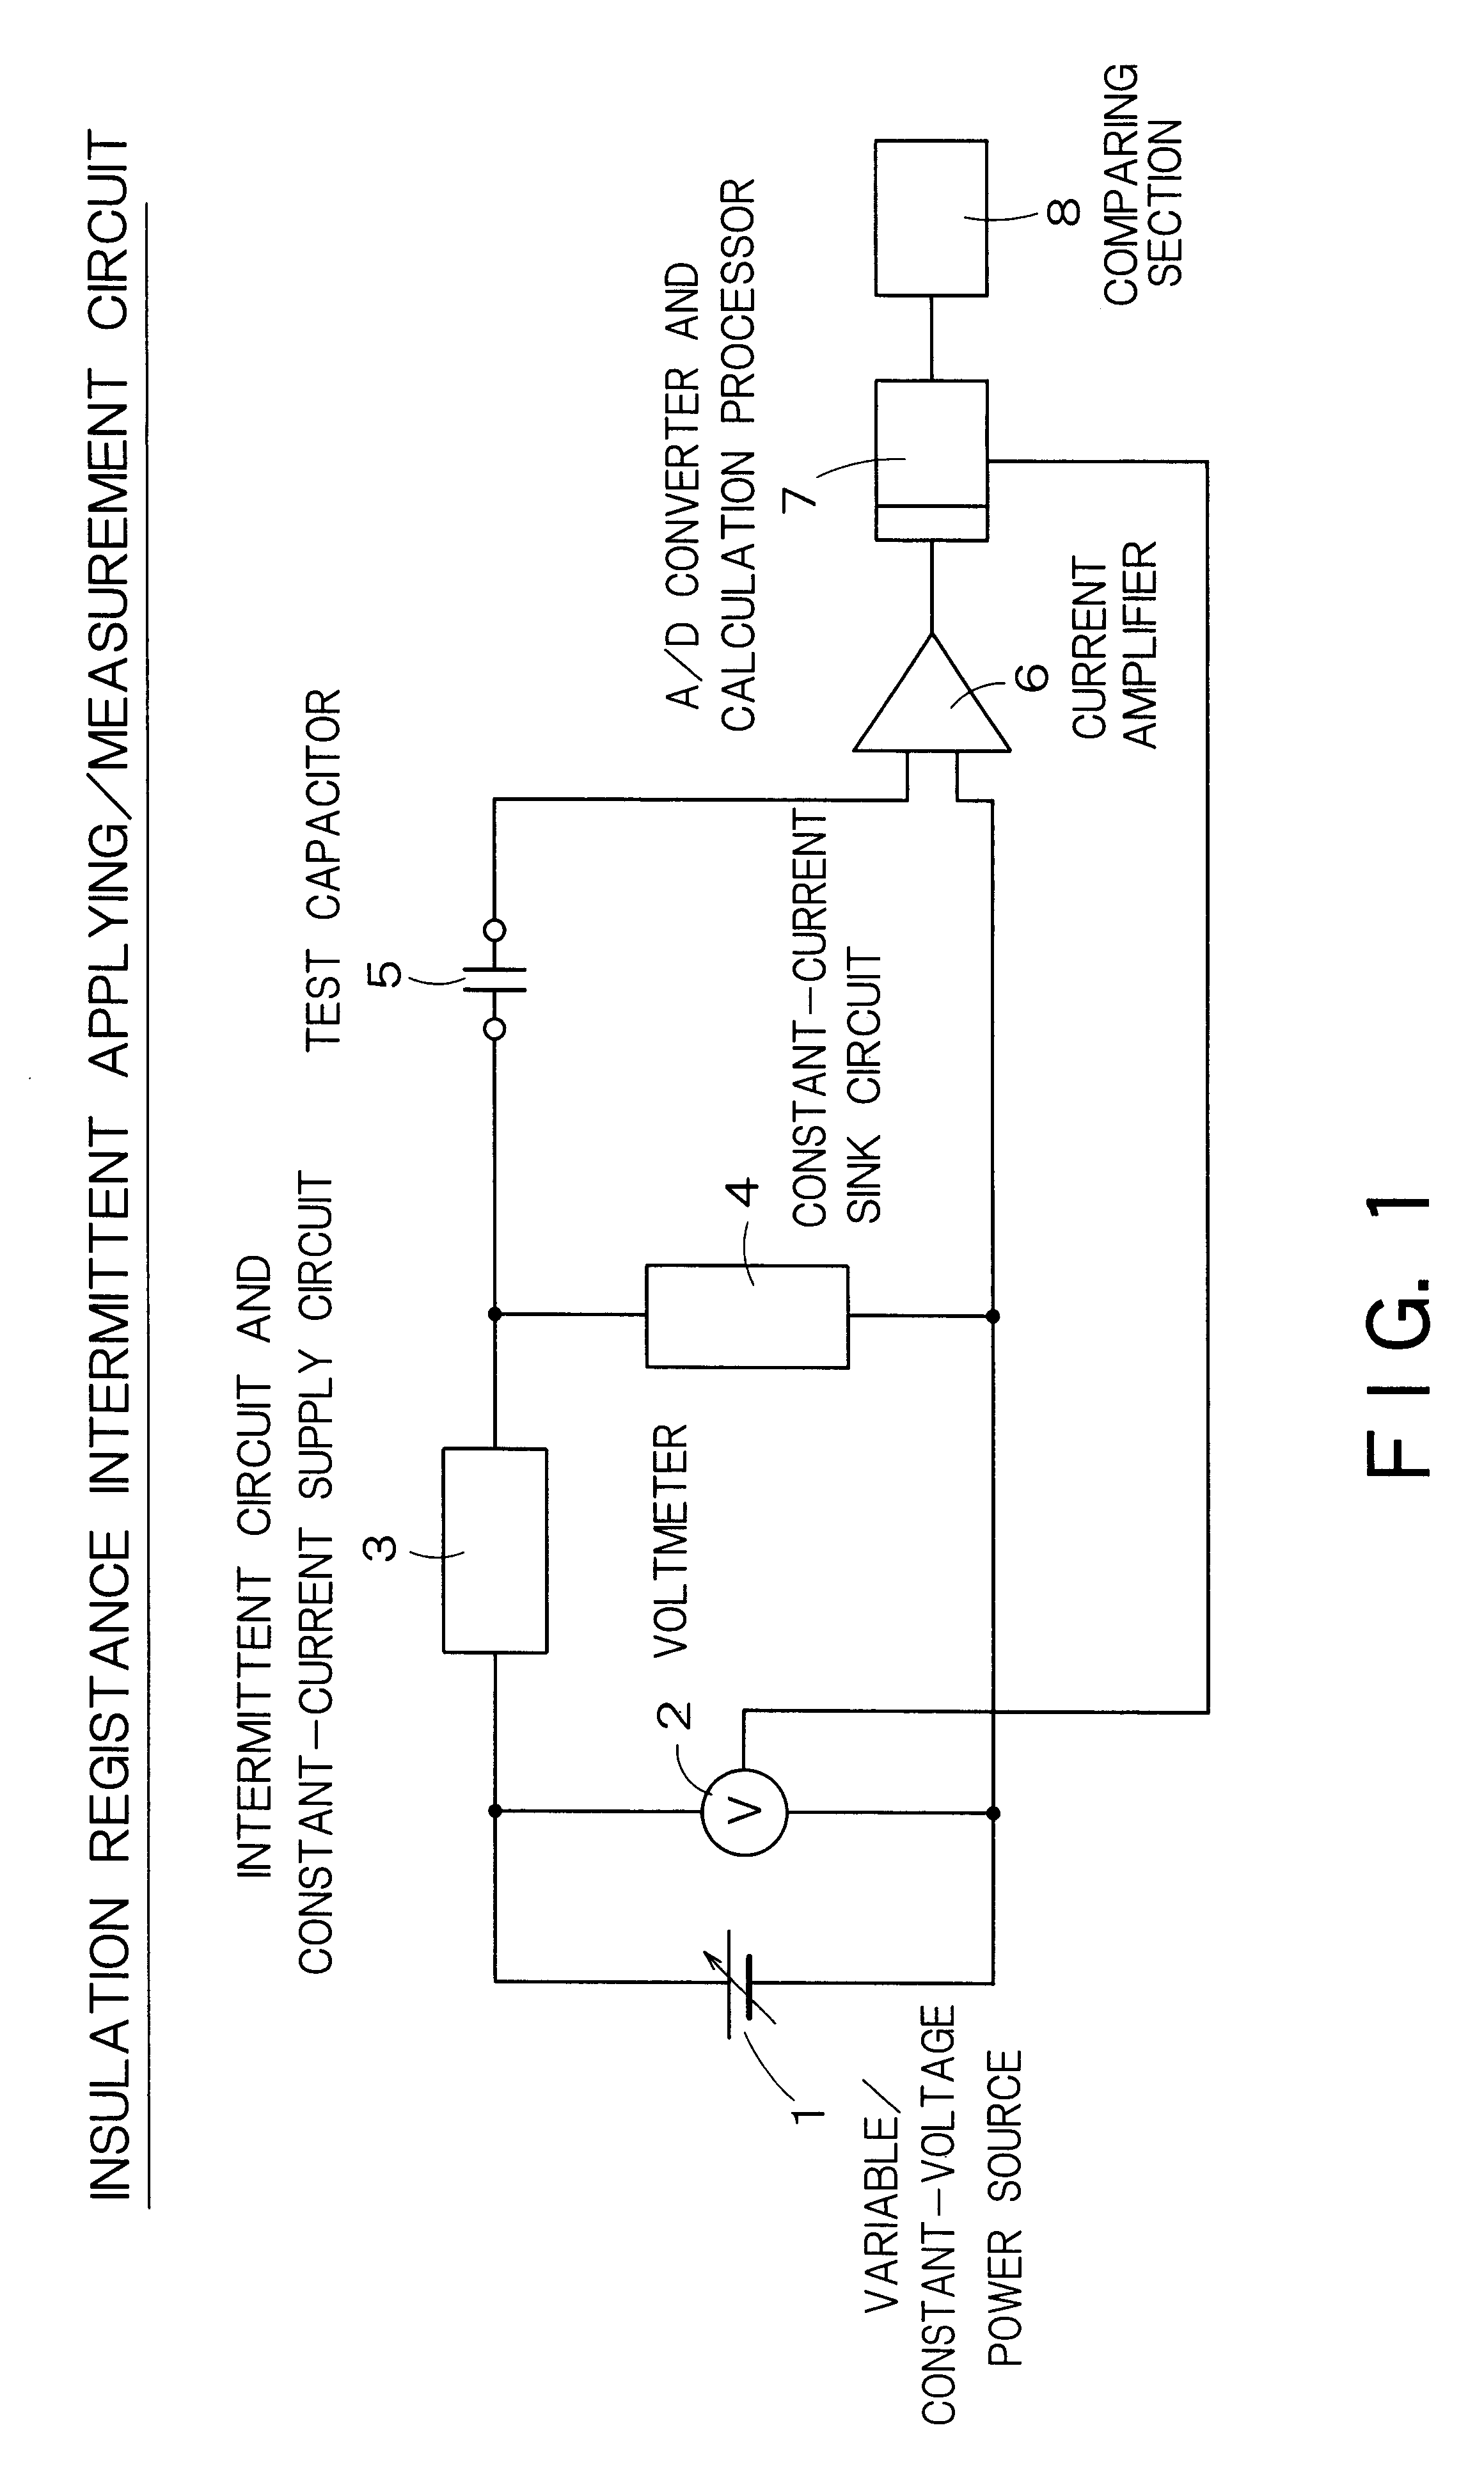 Brevet Us6642721 Method Of Measuring Insulation Resistance Constant Current Source Circuit Patent Drawing